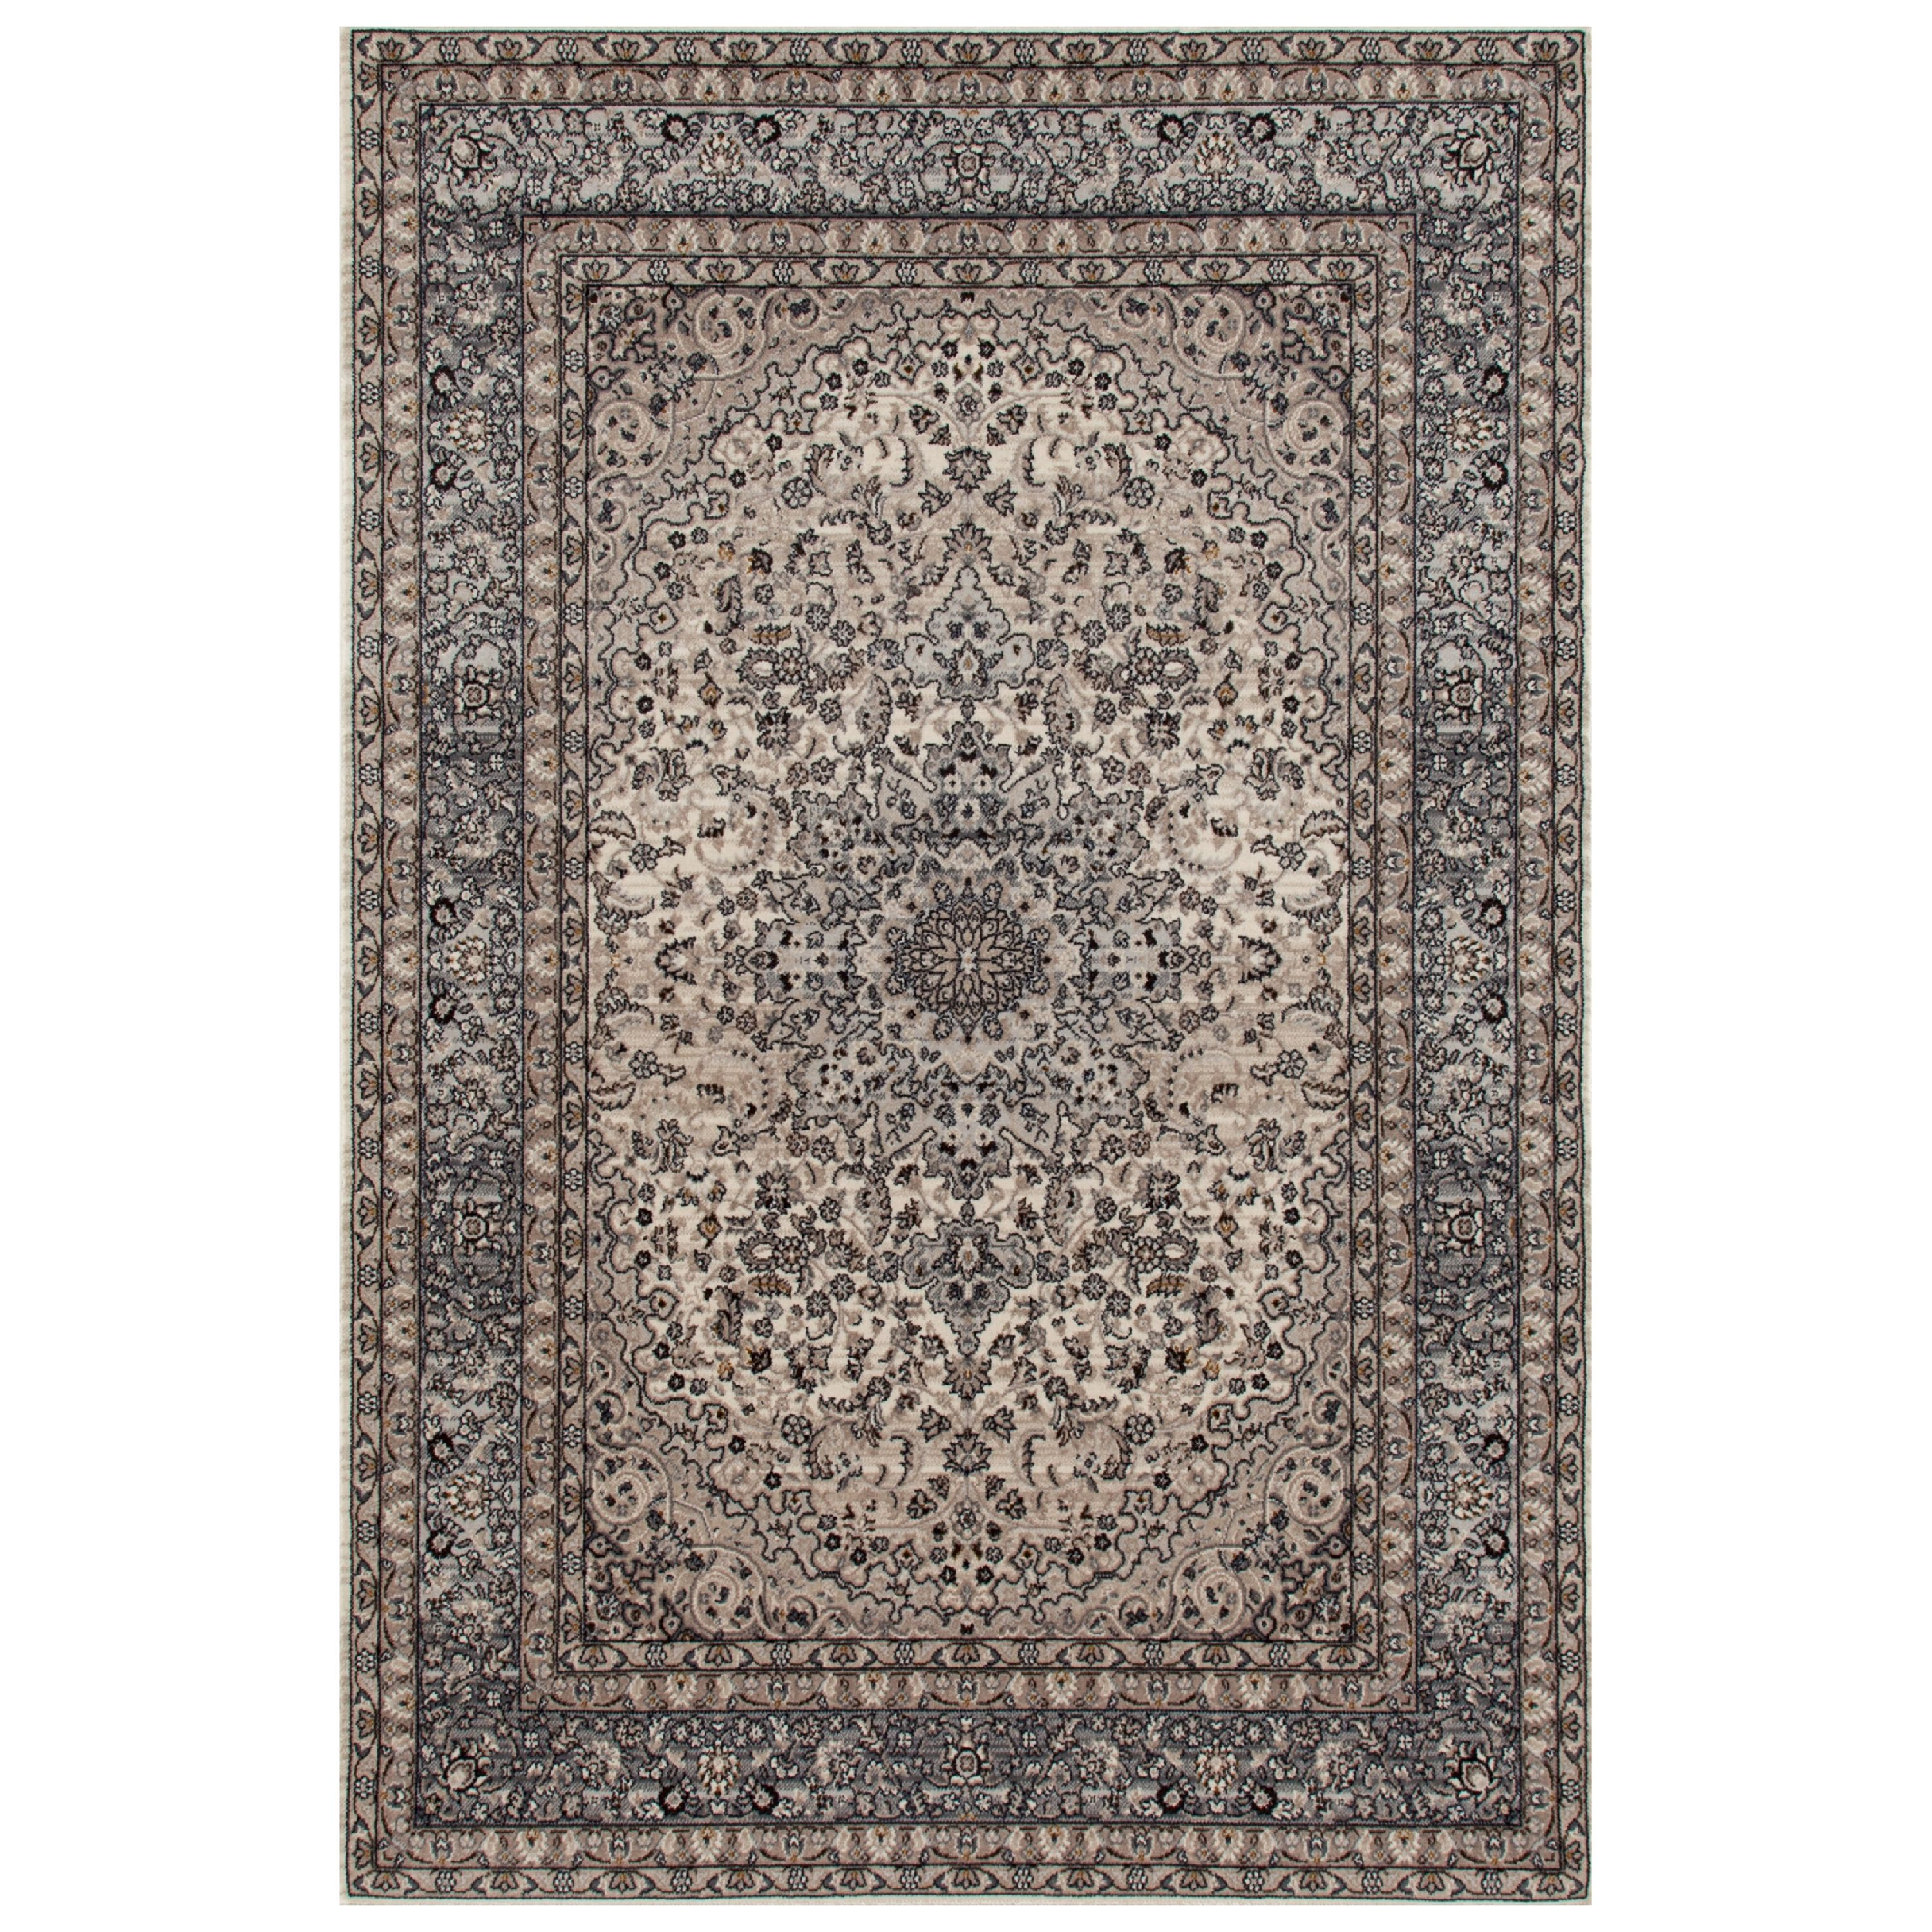 Traditional Oriental Gray High Quality Medallion Design Area Rug or Runner